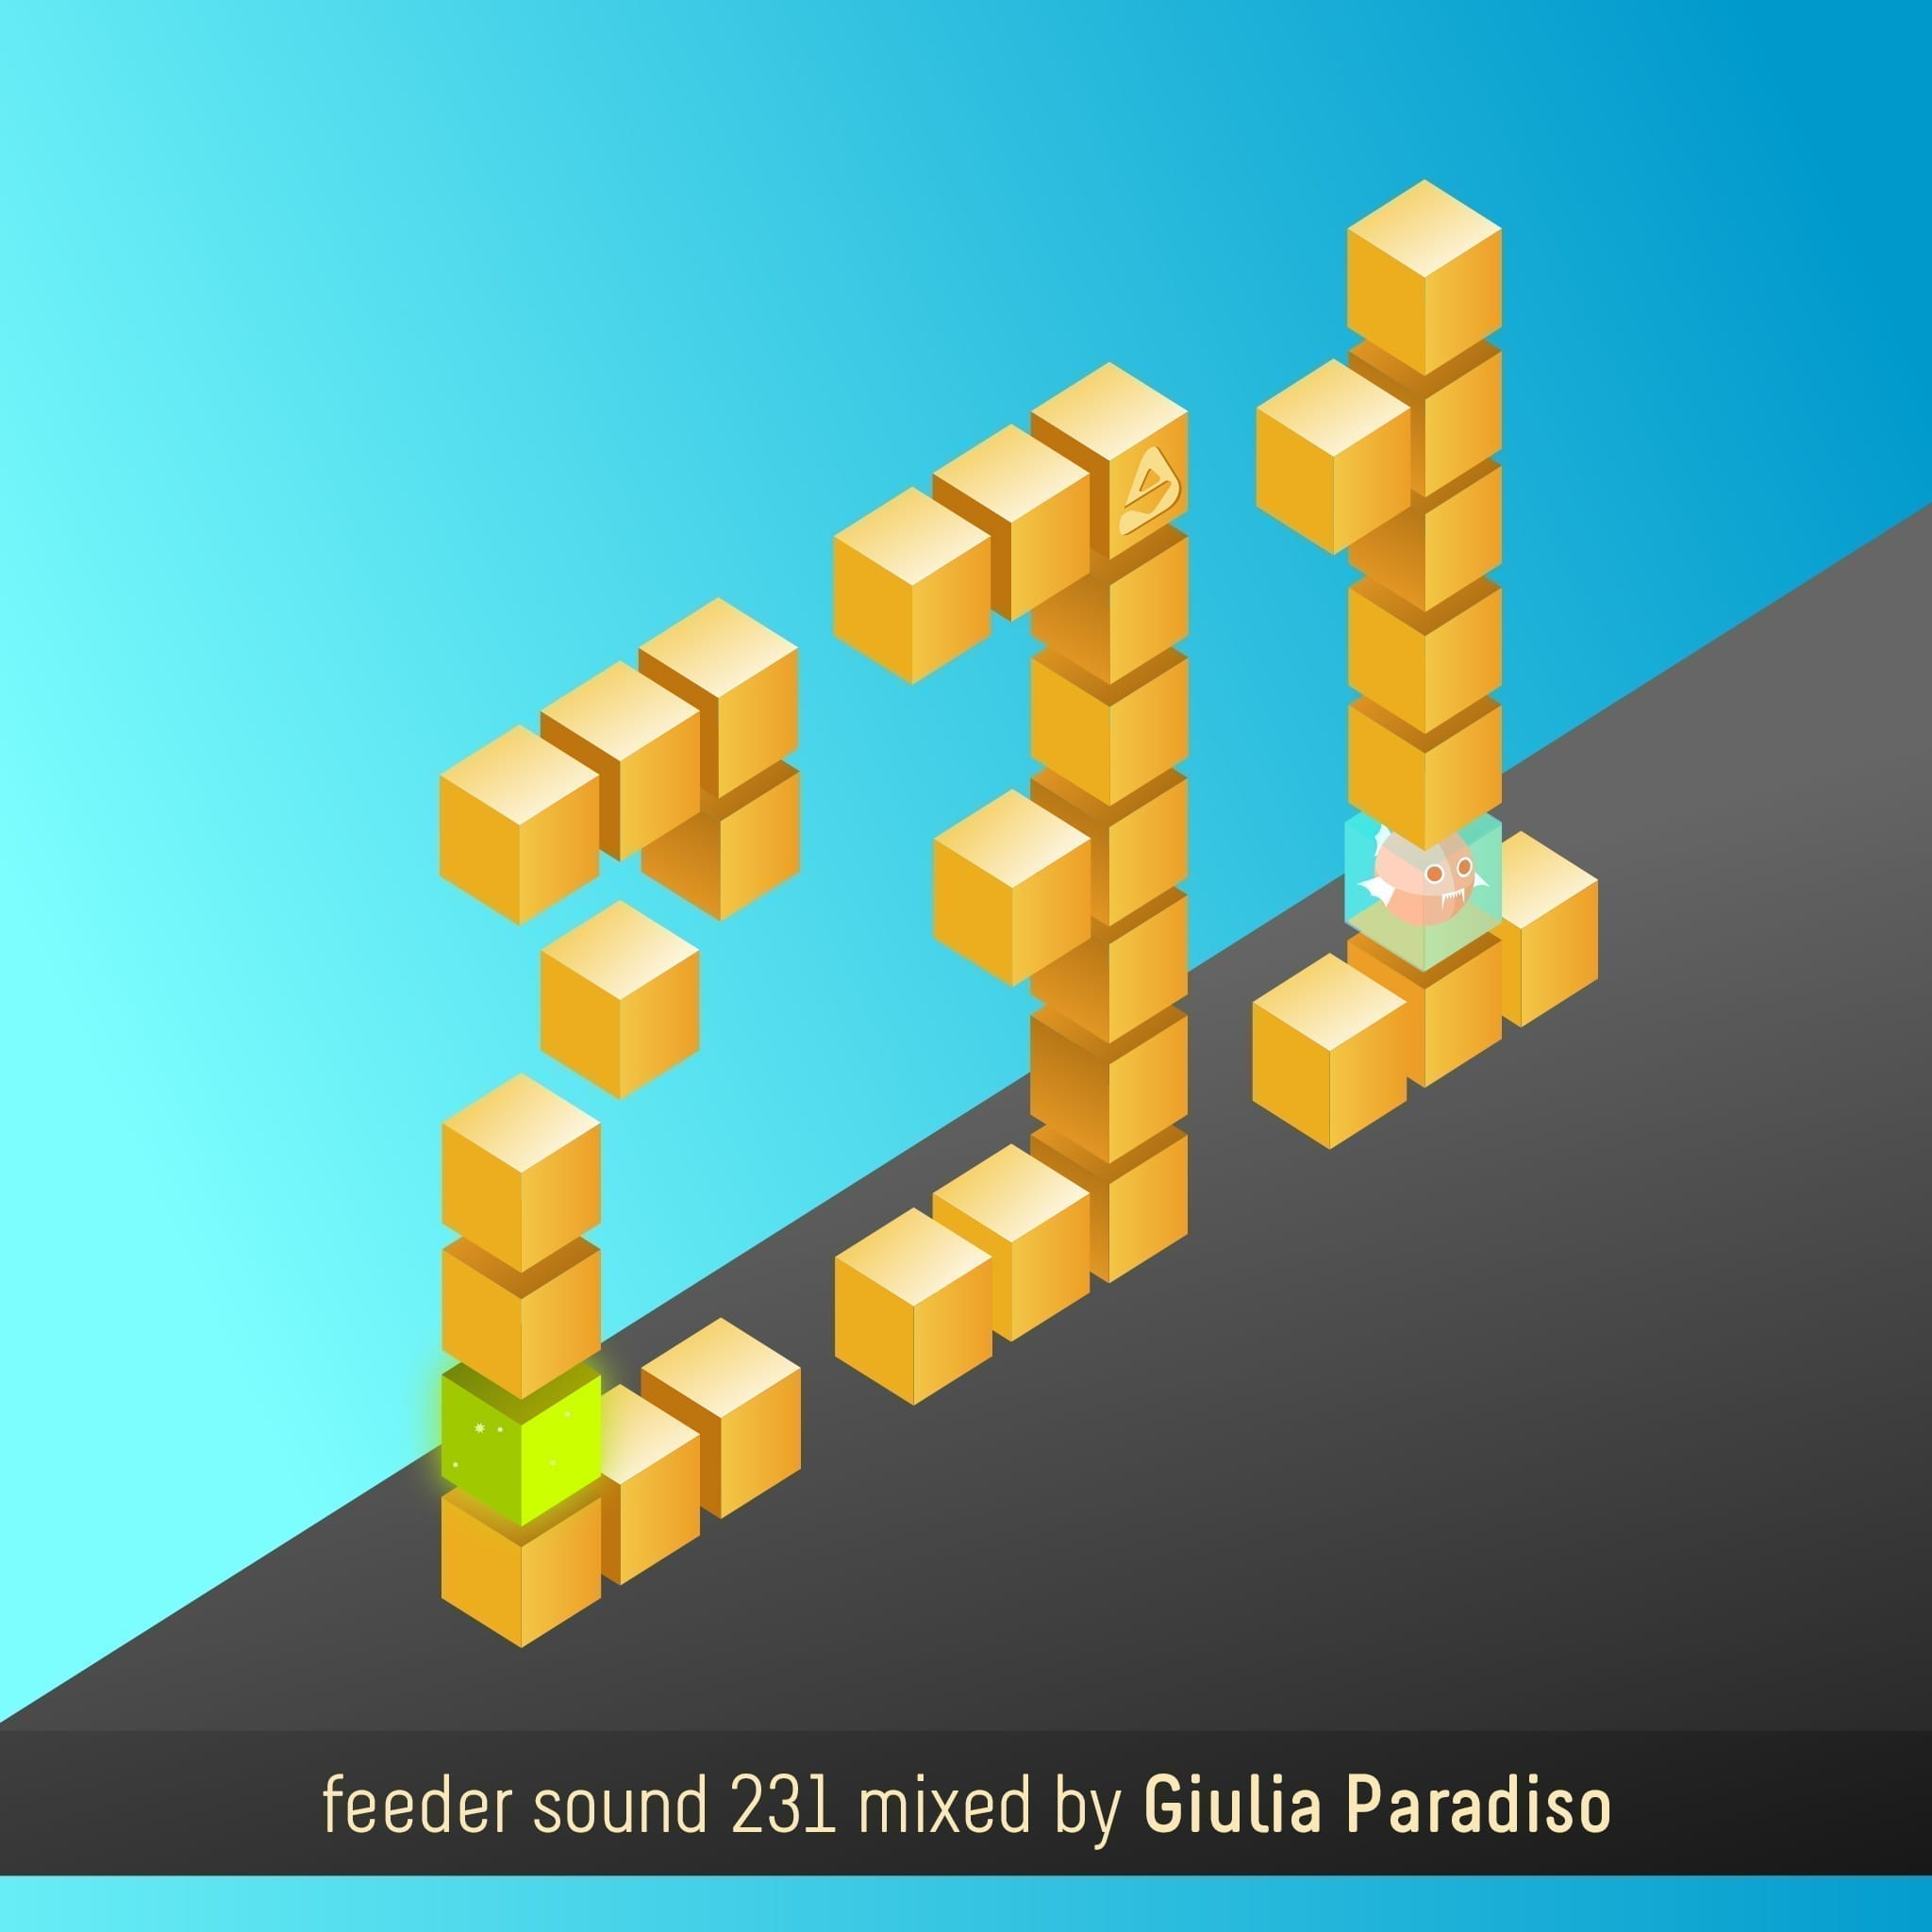 feeder sound 231 mixed by Giulia Paradiso article-cover